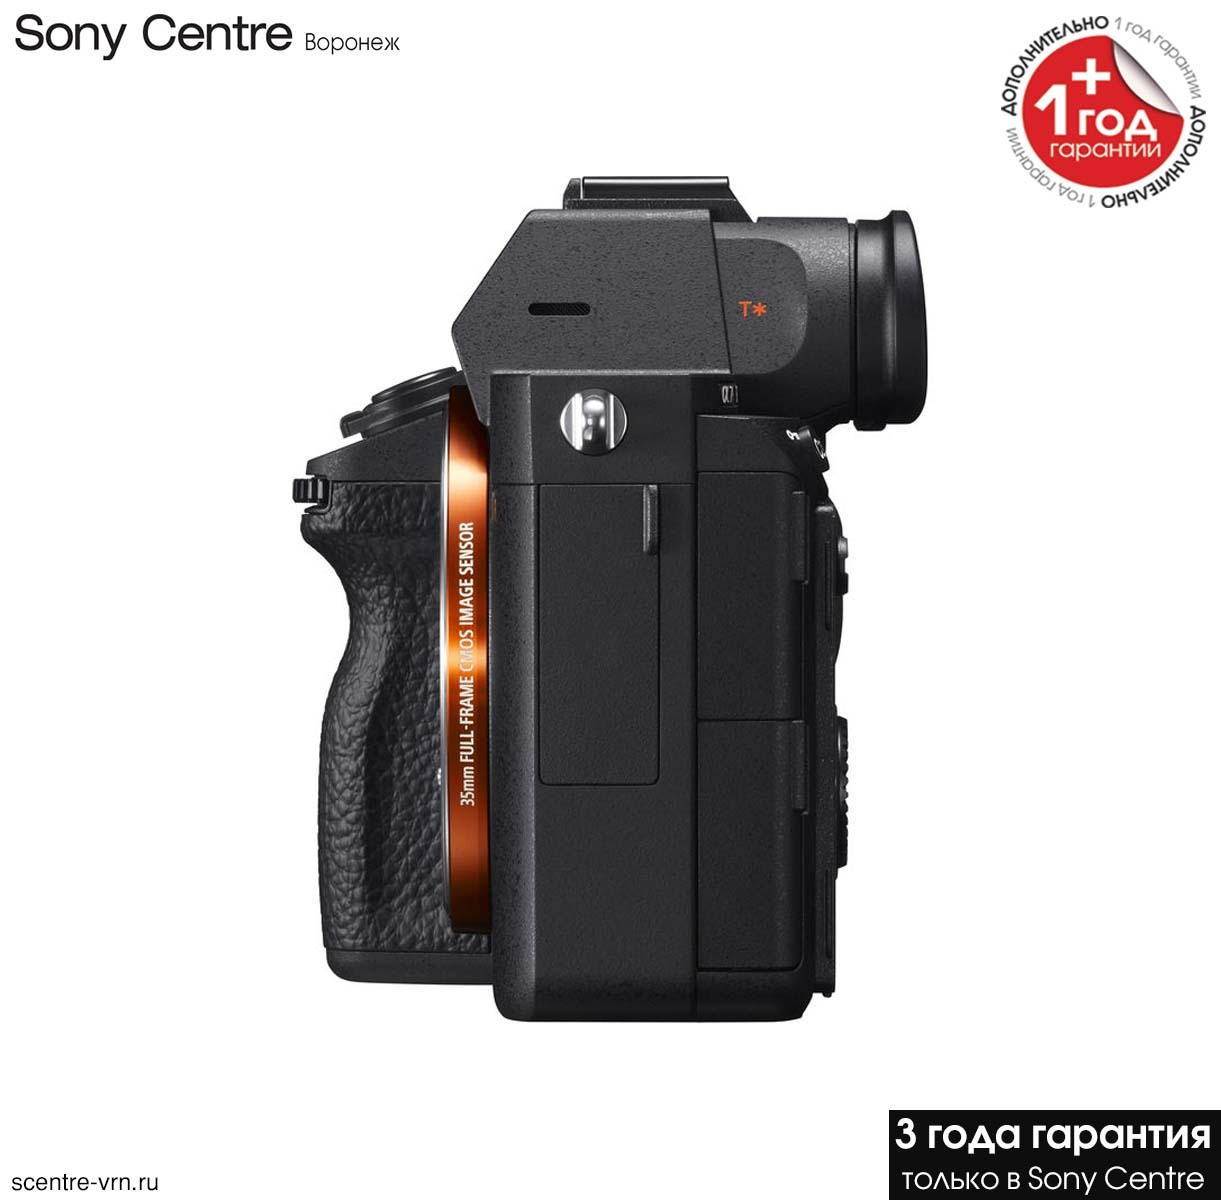 Купить Sony Alpha ILCE-7R3 Body в Sony Centre Воронеж